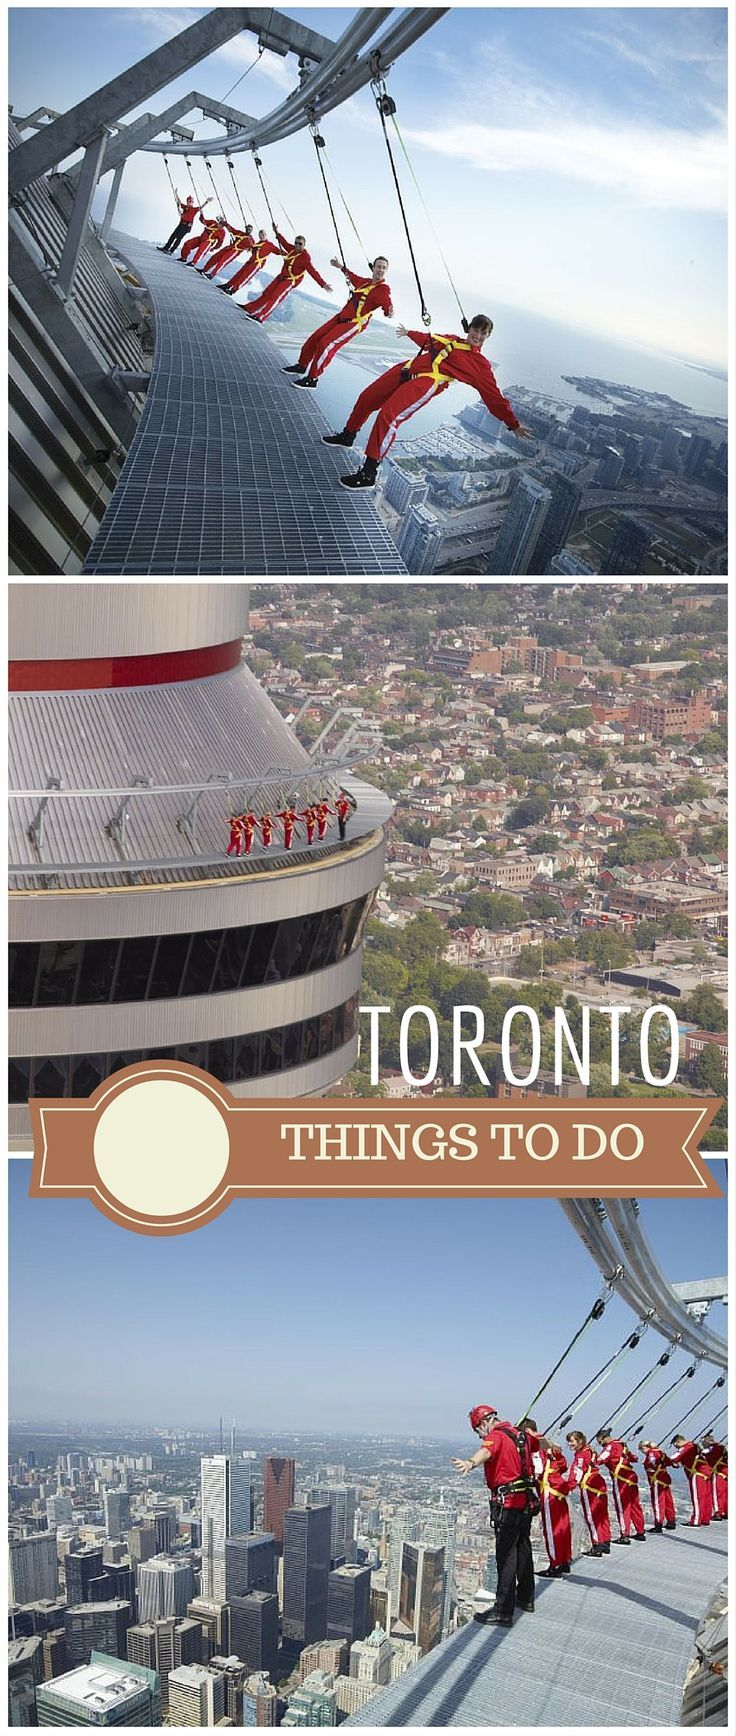 The EdgeWalk. Brave enough to try this? Photo: CN Tower: